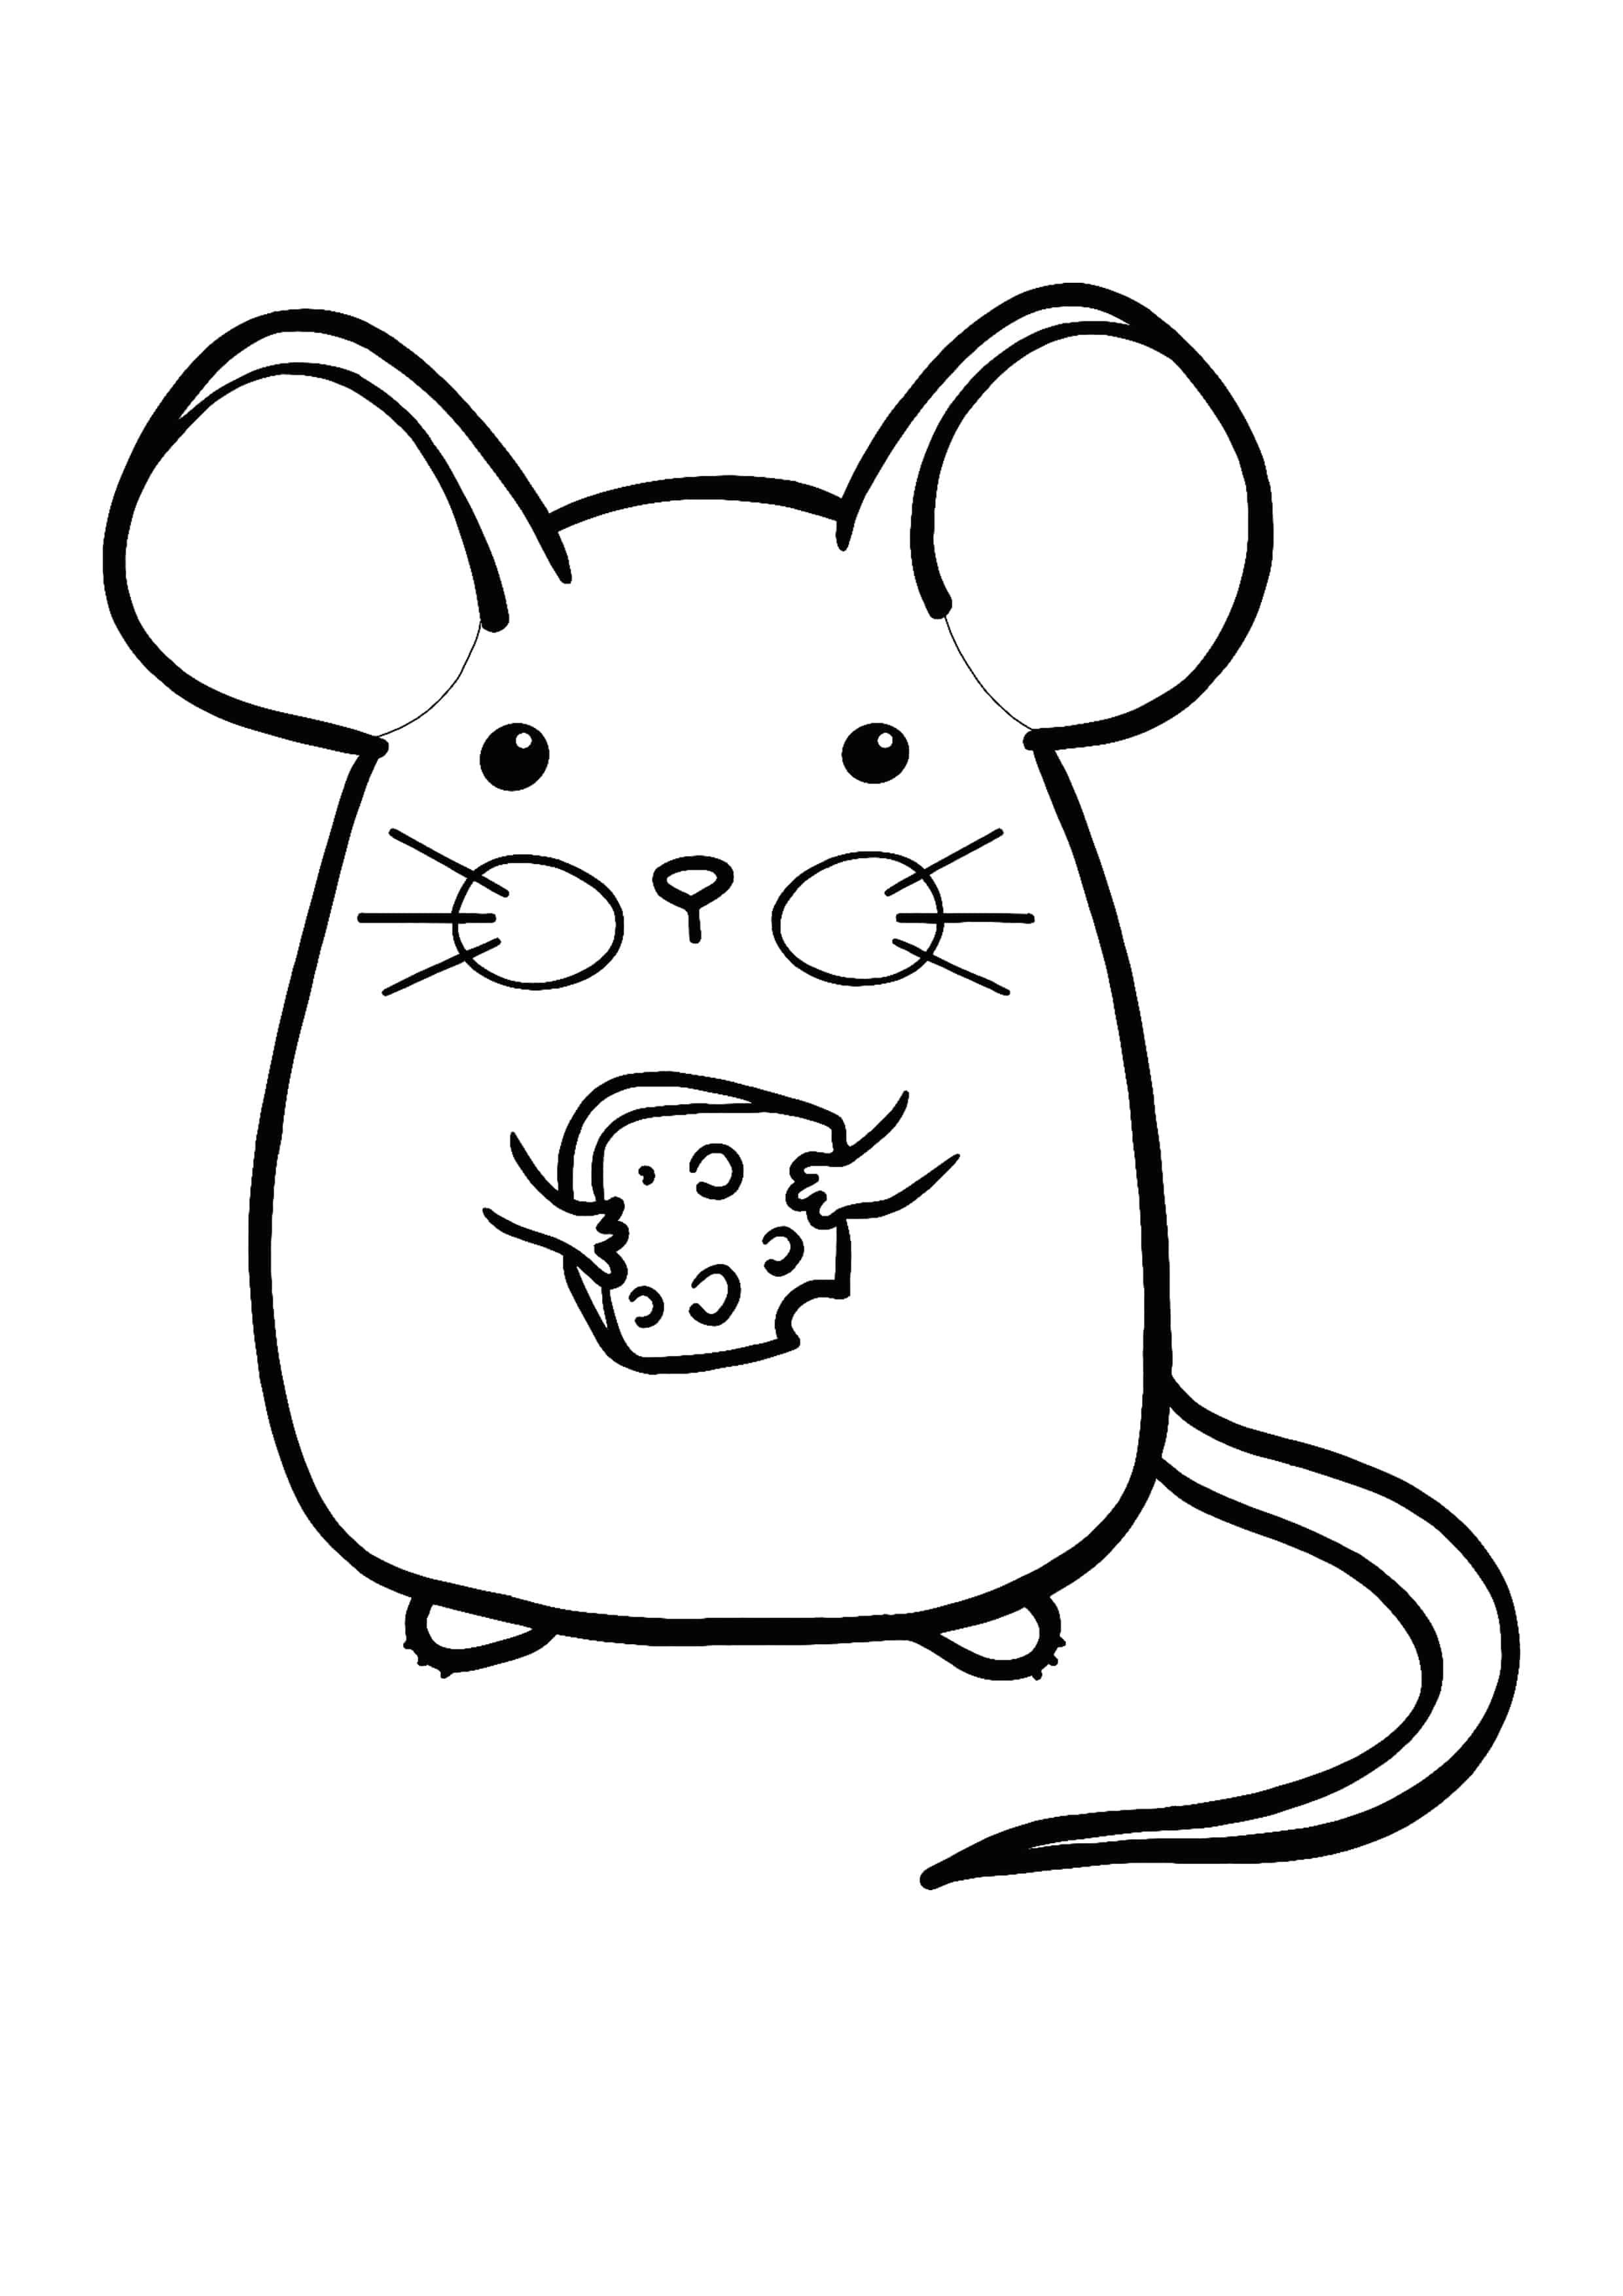 Kawaii Mouse Coloring Page Cat Coloring Page Manga Coloring Book Cute Coloring Pages